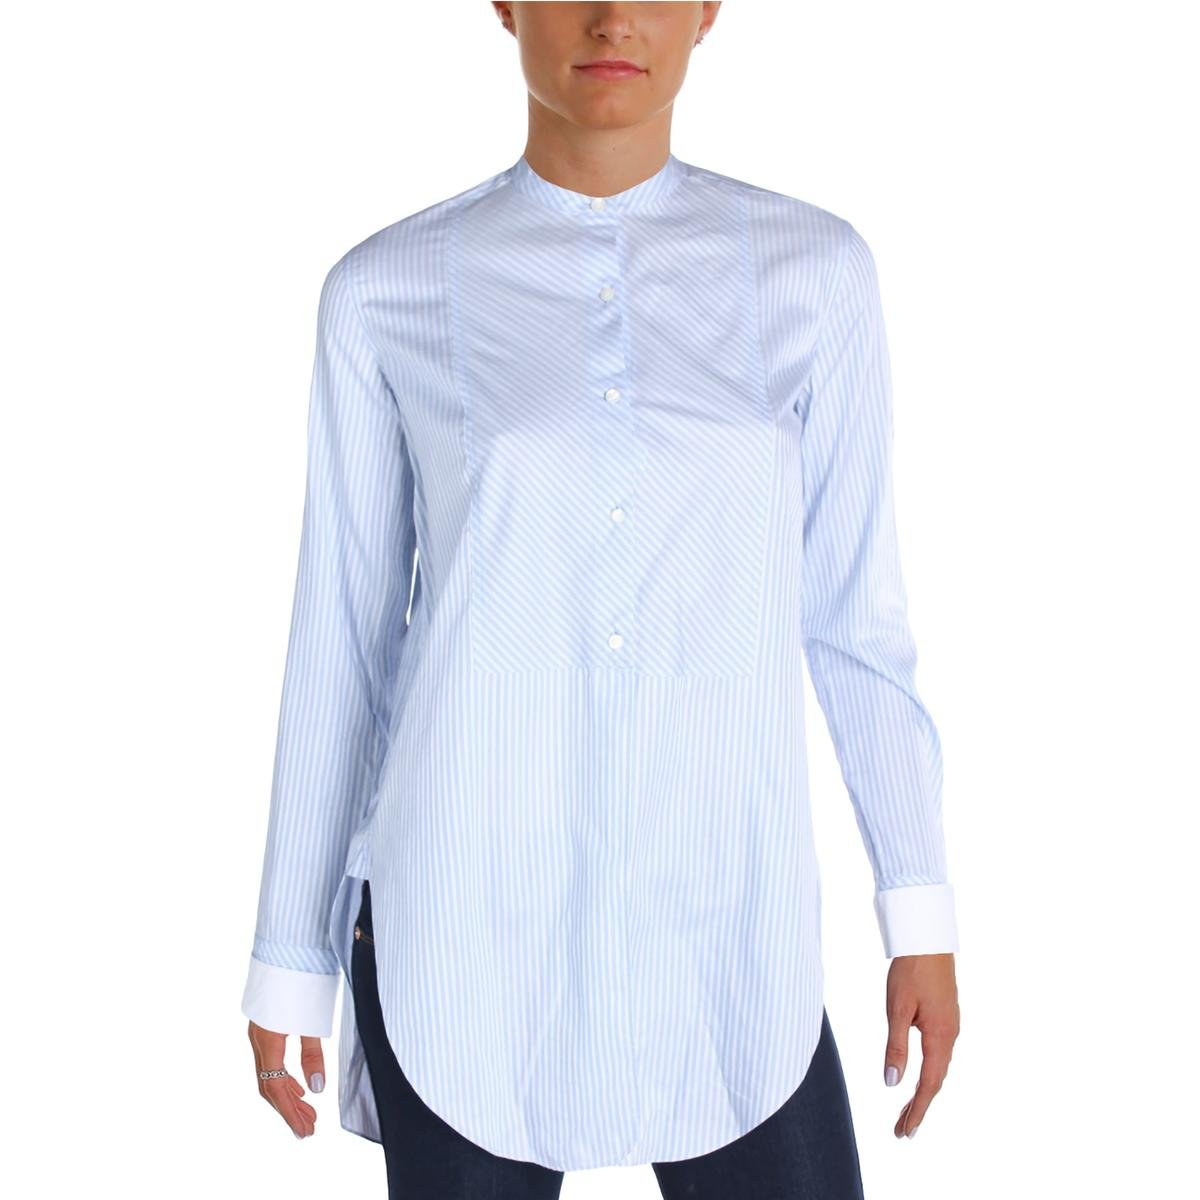 Helmut Lang Womens Striped Long Sleeves Button-Down Top Blue S